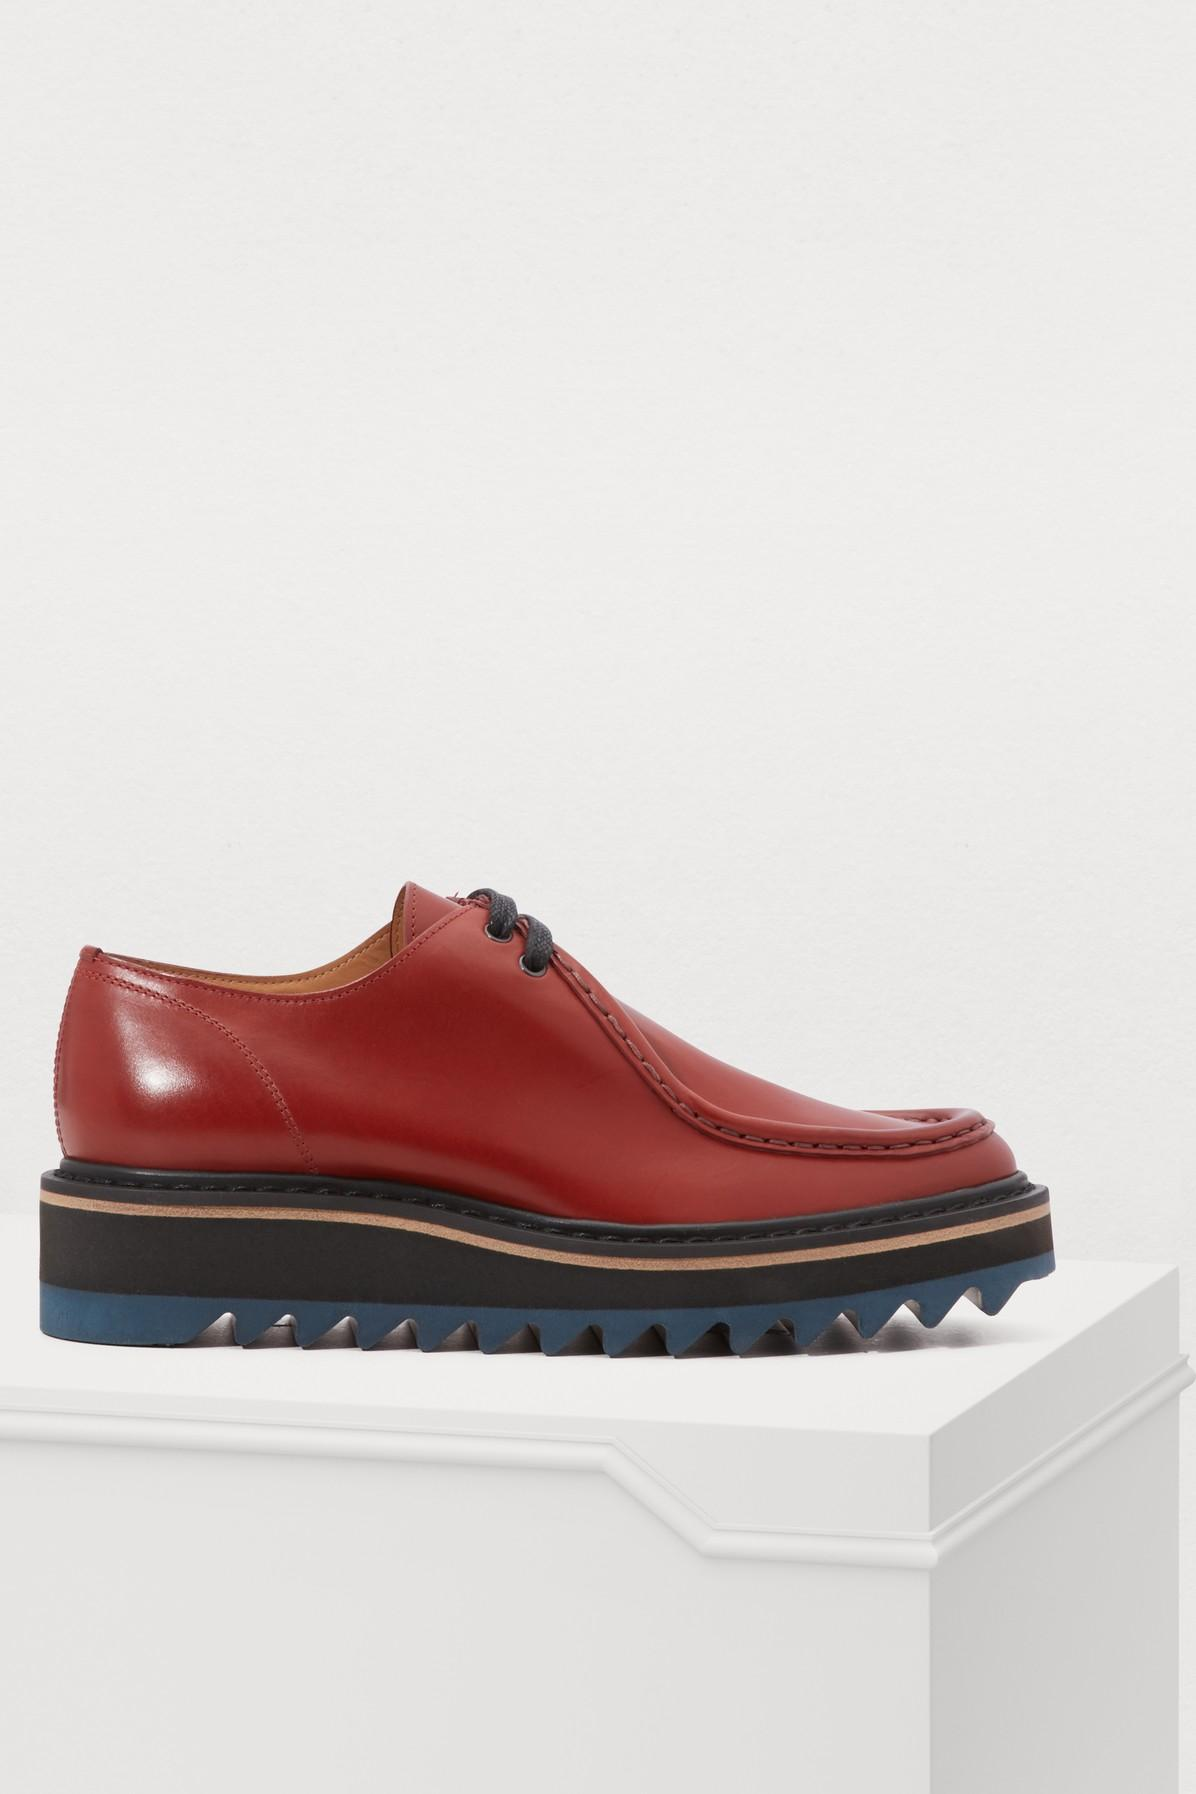 8a0a1b1006 Dries Van Noten Leather Derby Shoes in Red - Lyst